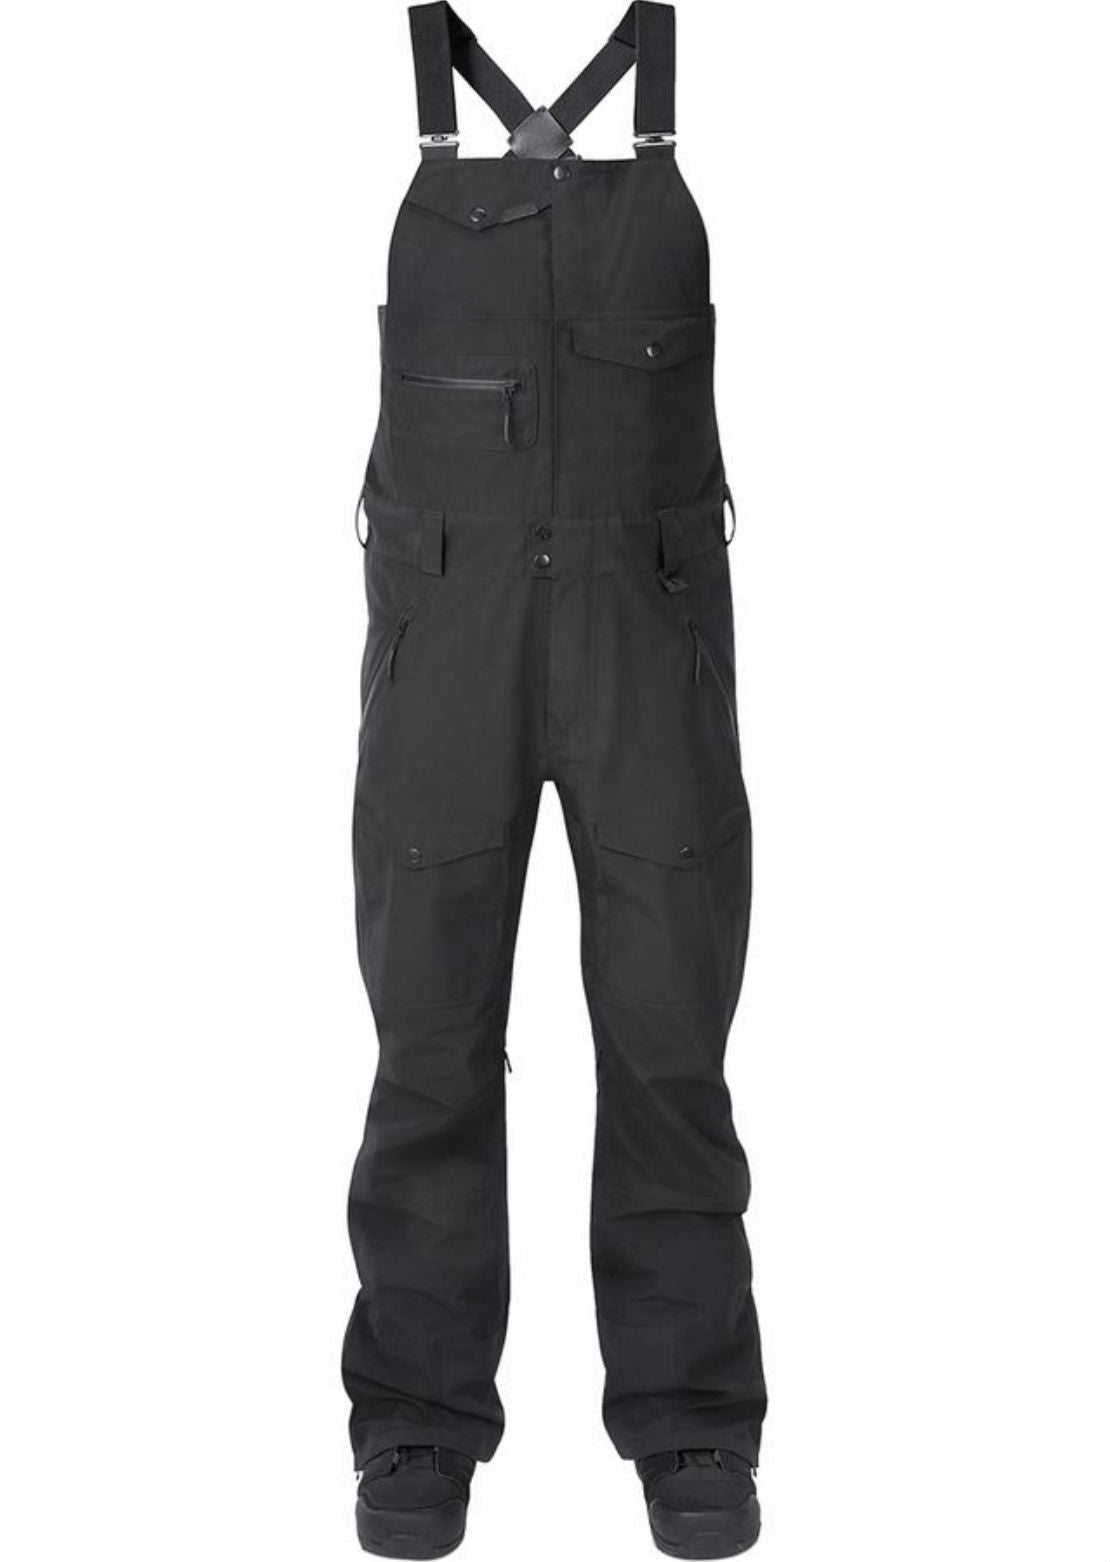 Dakine Men's Stoker Gore-Tex 3L Bib Pants